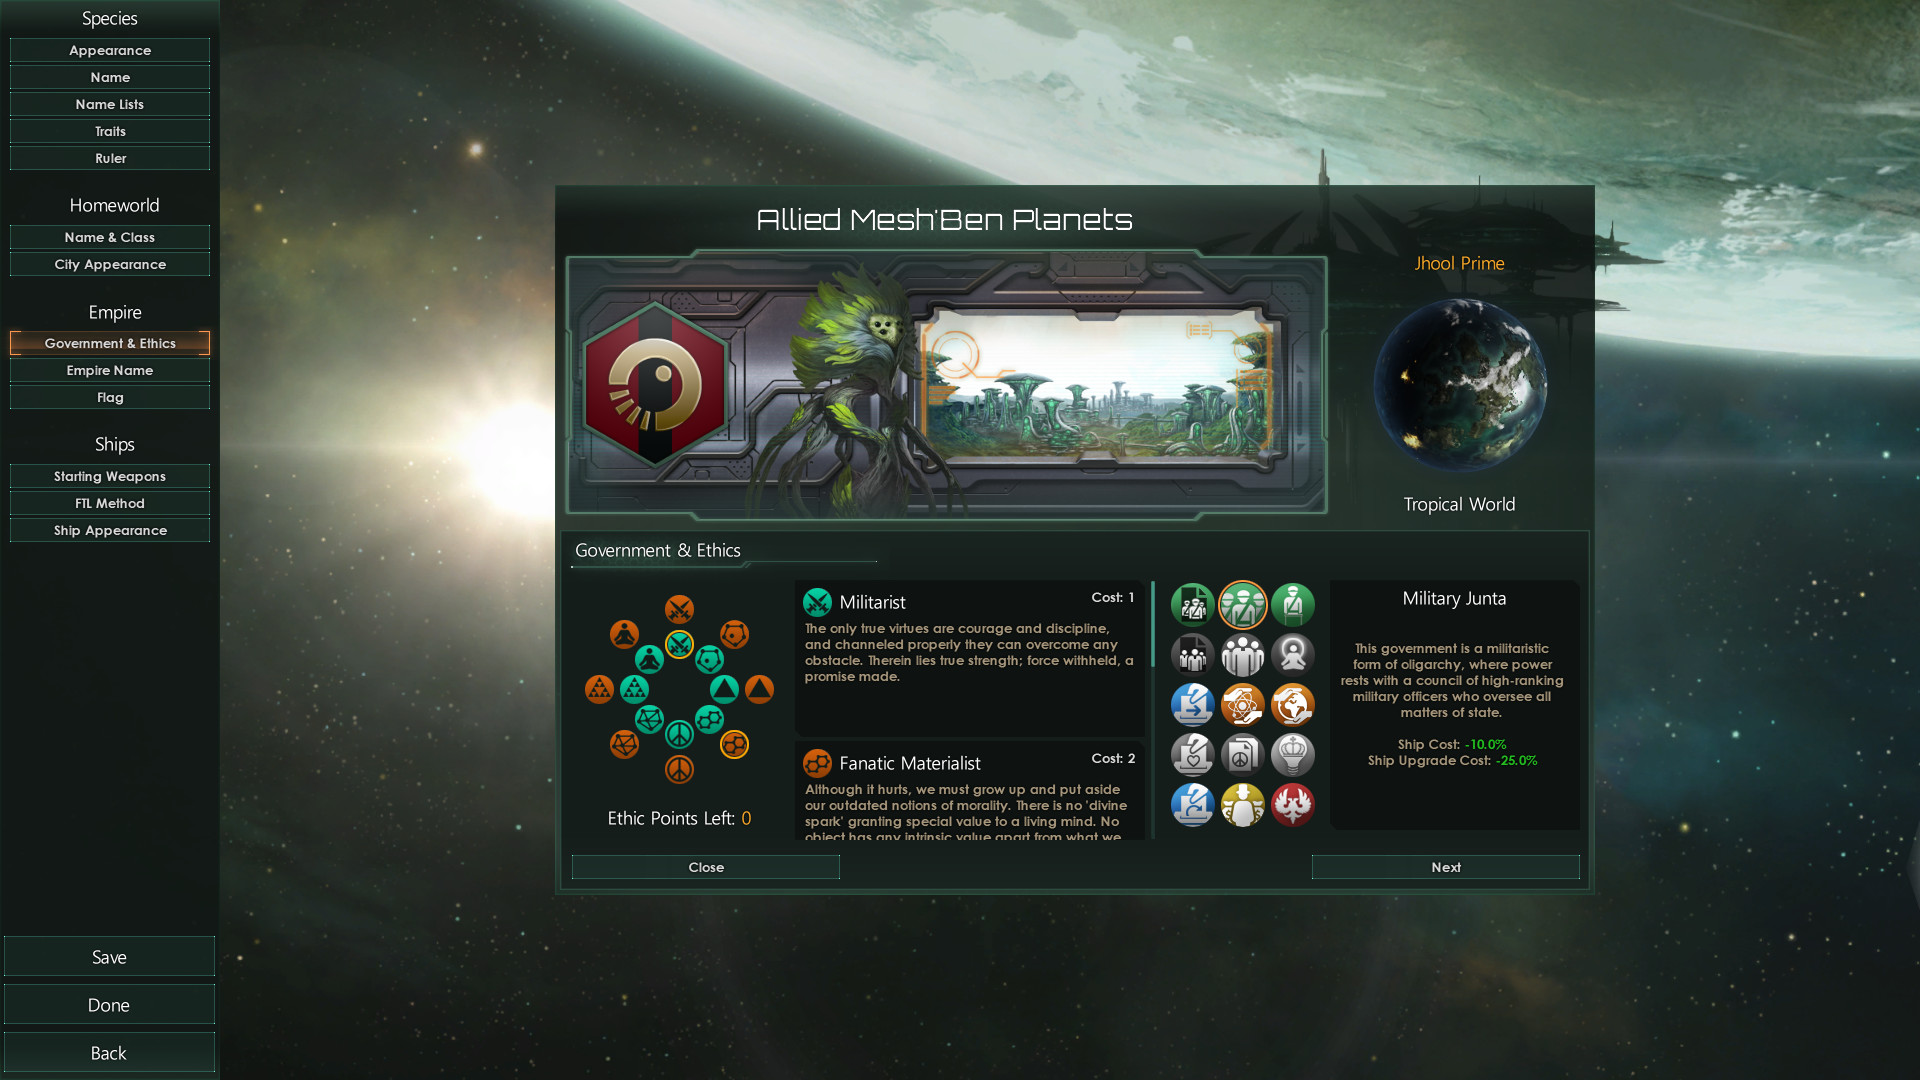 ss 4339e1c26911f954fb1ac77ab892b0f9aa4c65e1.1920x1080 - Stellaris Review - Reaching for the Stars